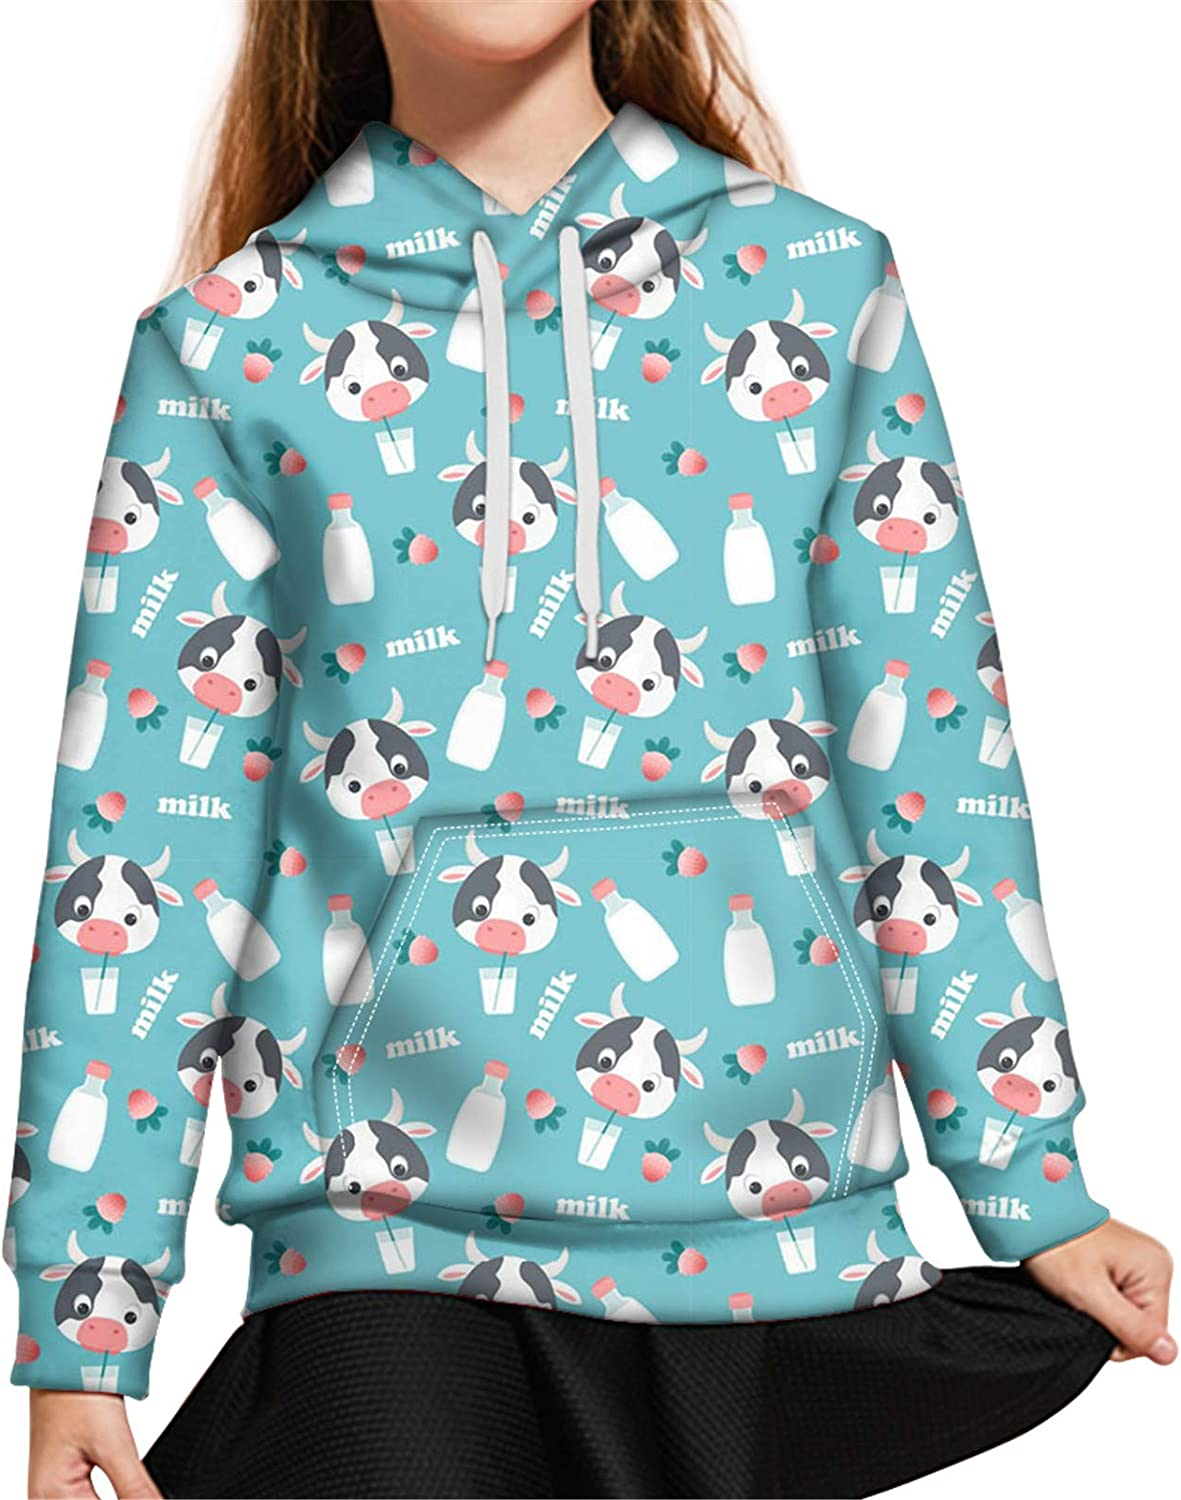 Upetstory Youth Hoodies for Girls Boys Kids Size S-XL Long Sleeve Hooded Sweatshirt with Pockets